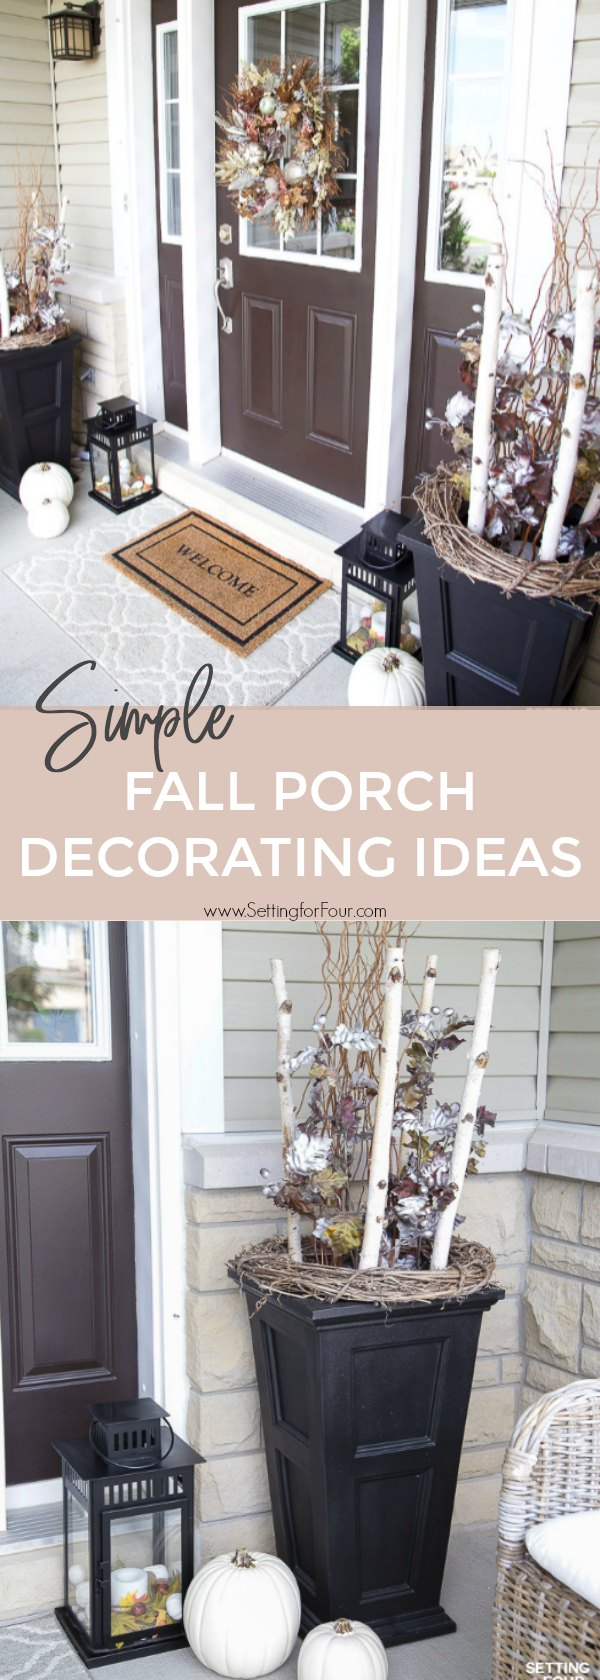 Simple Fall Porch Decorating Ideas With Big Impact! #container #urn #birch #simple #fall #porch #decor #pumpkins #leaves #mums